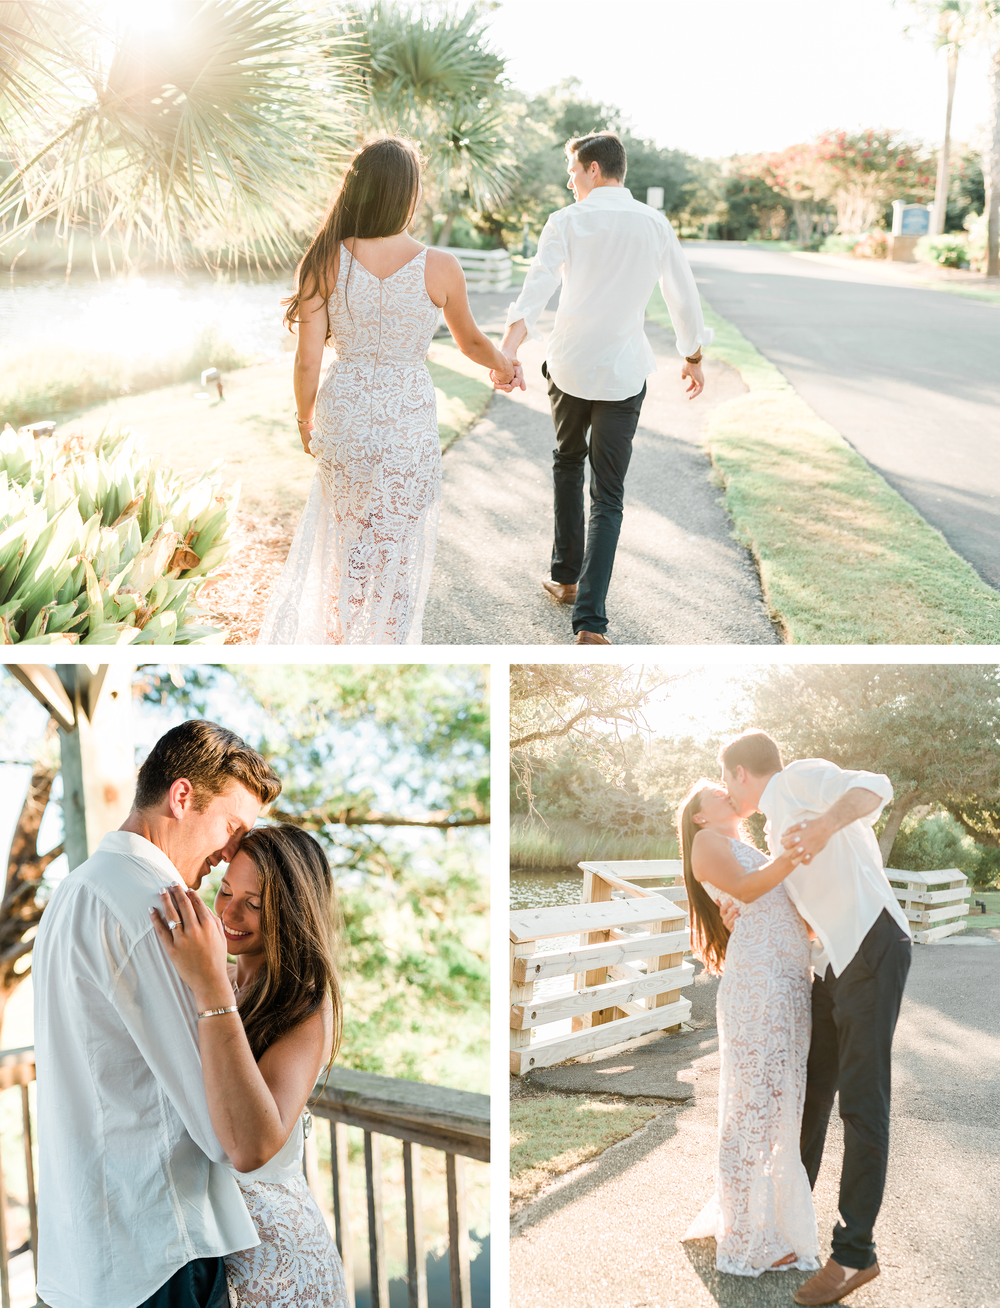 Evan Haley Engagement_Pawleys Island SC_Kristen Paige Photography_Gallery 6.png